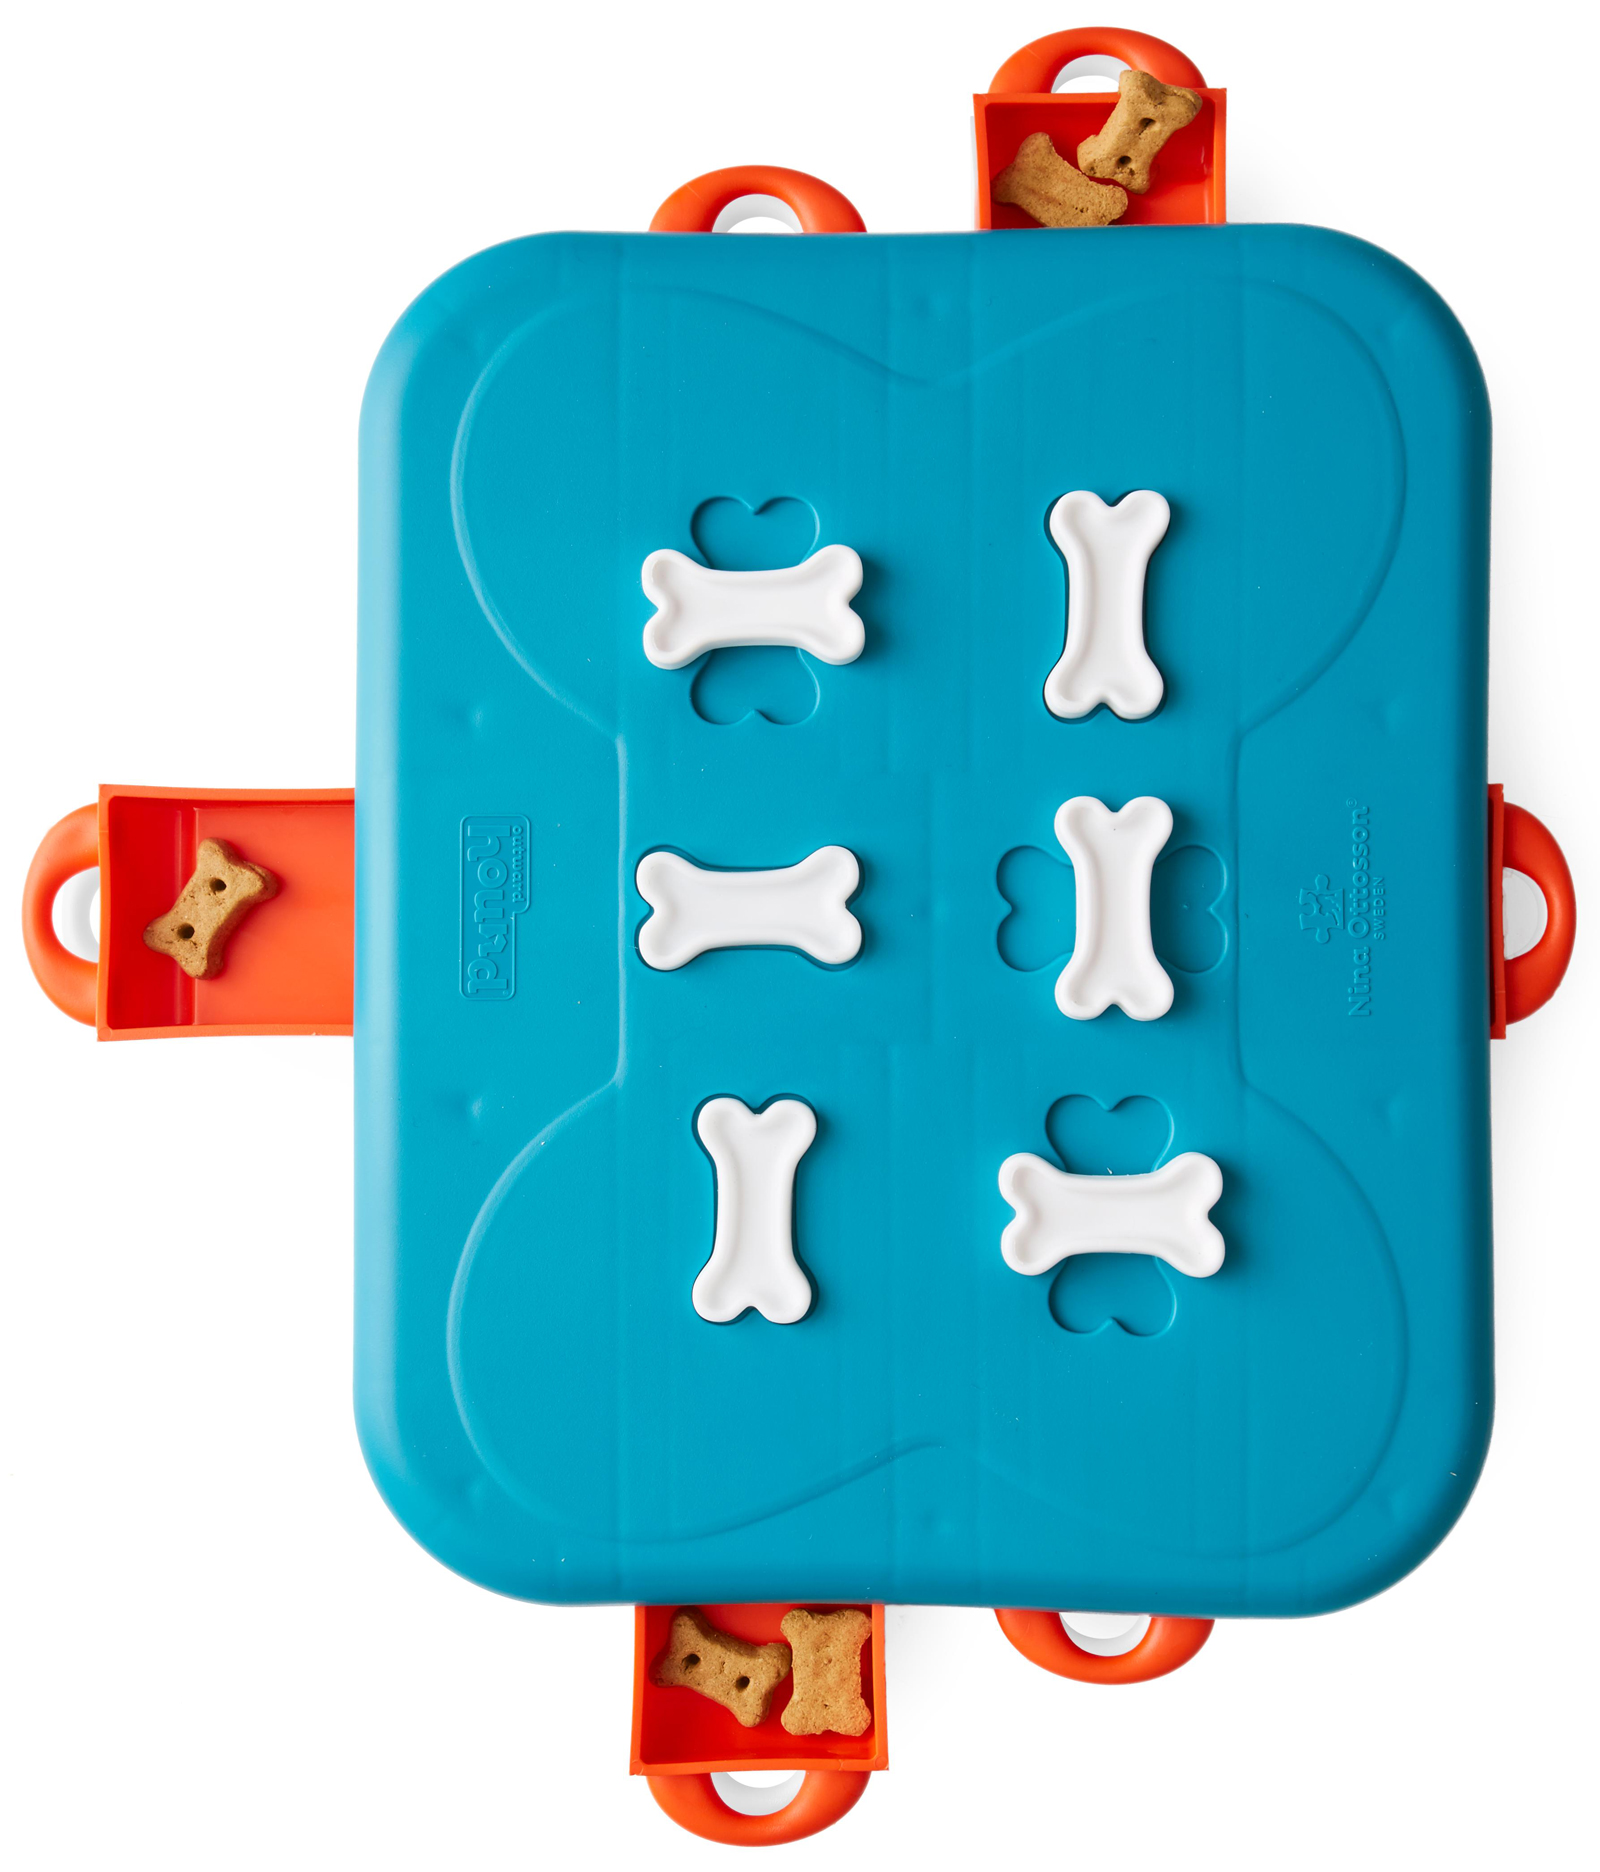 dog casino interactive toy